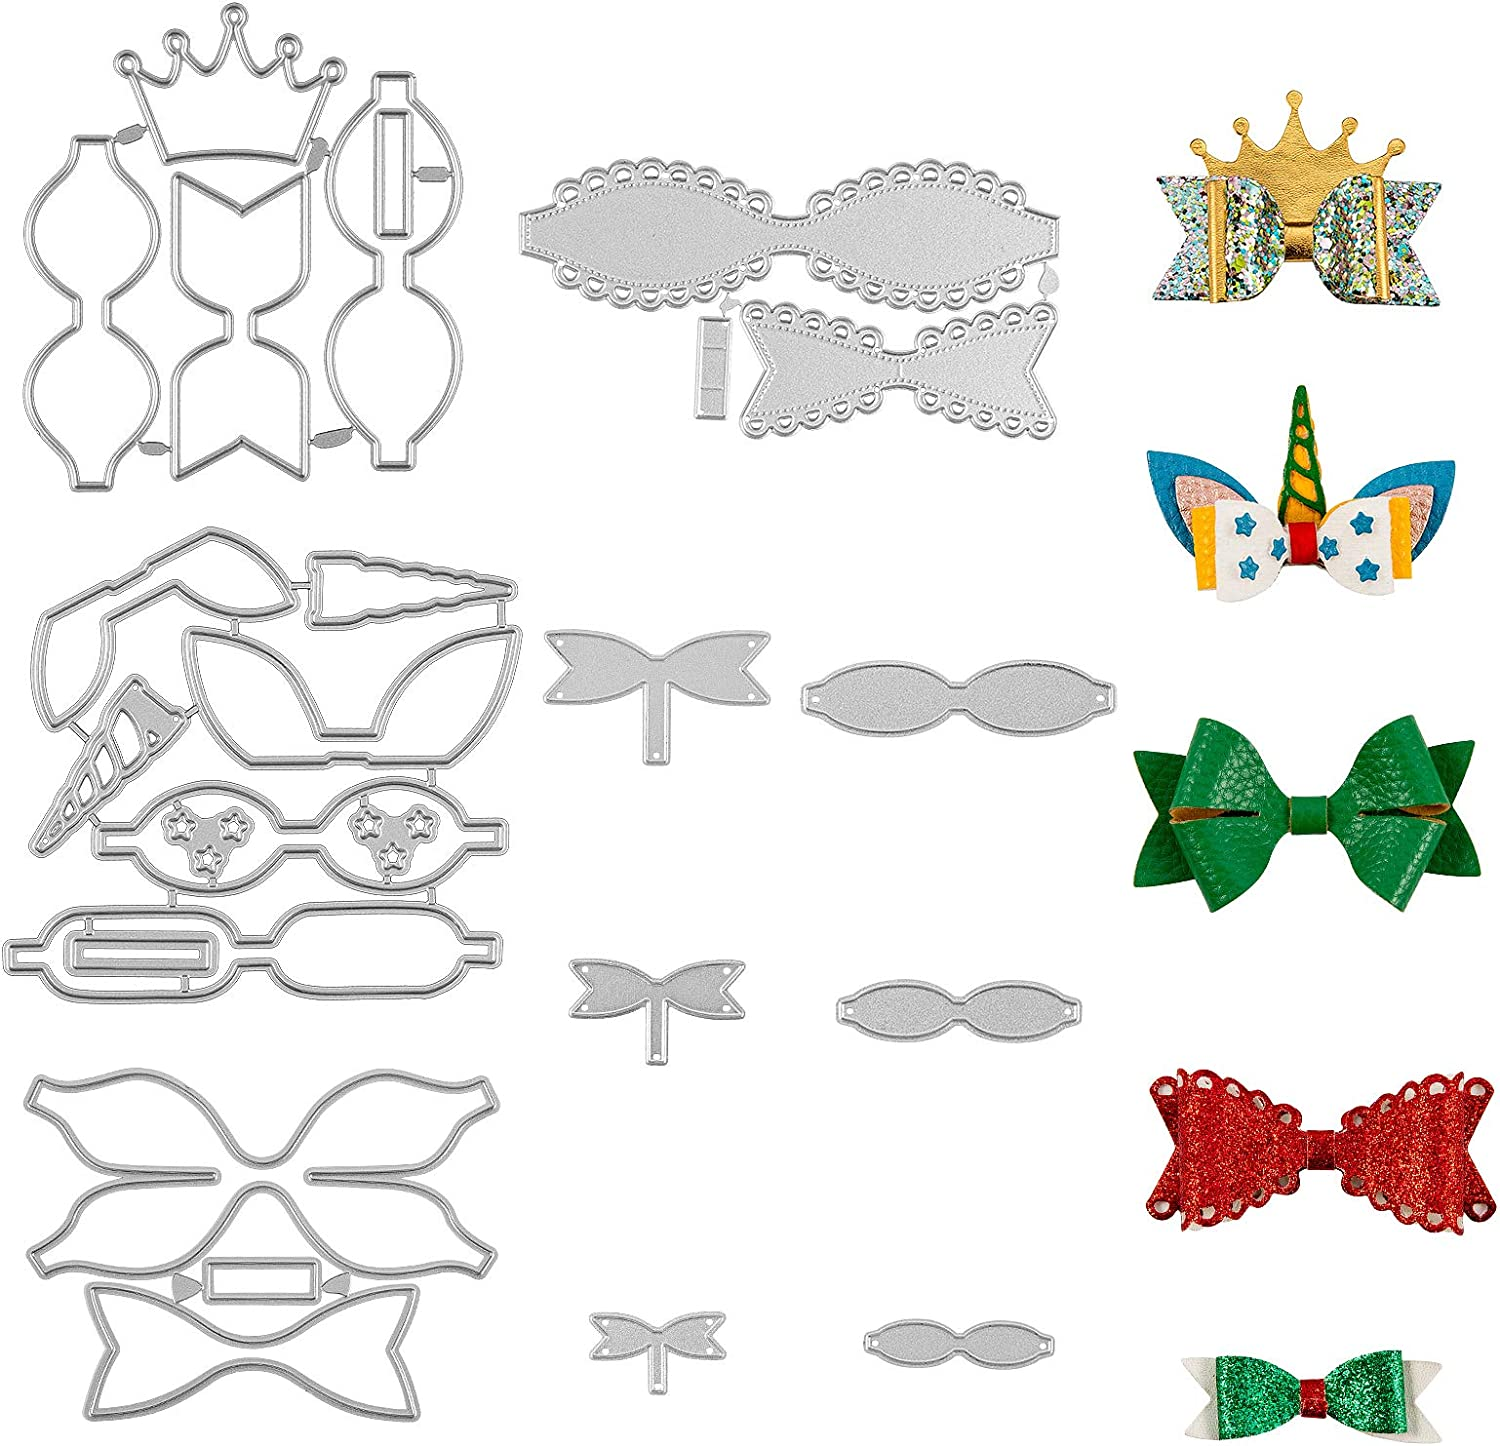 3pcs Crown Bow Tie Metal Die Cuts,Merry Christmas Bowtie Hair Bow Cutting Dies Cut Stencils for DIY Scrapbooking Decorative Embossing Paper Leather Scrapbooking Card Making